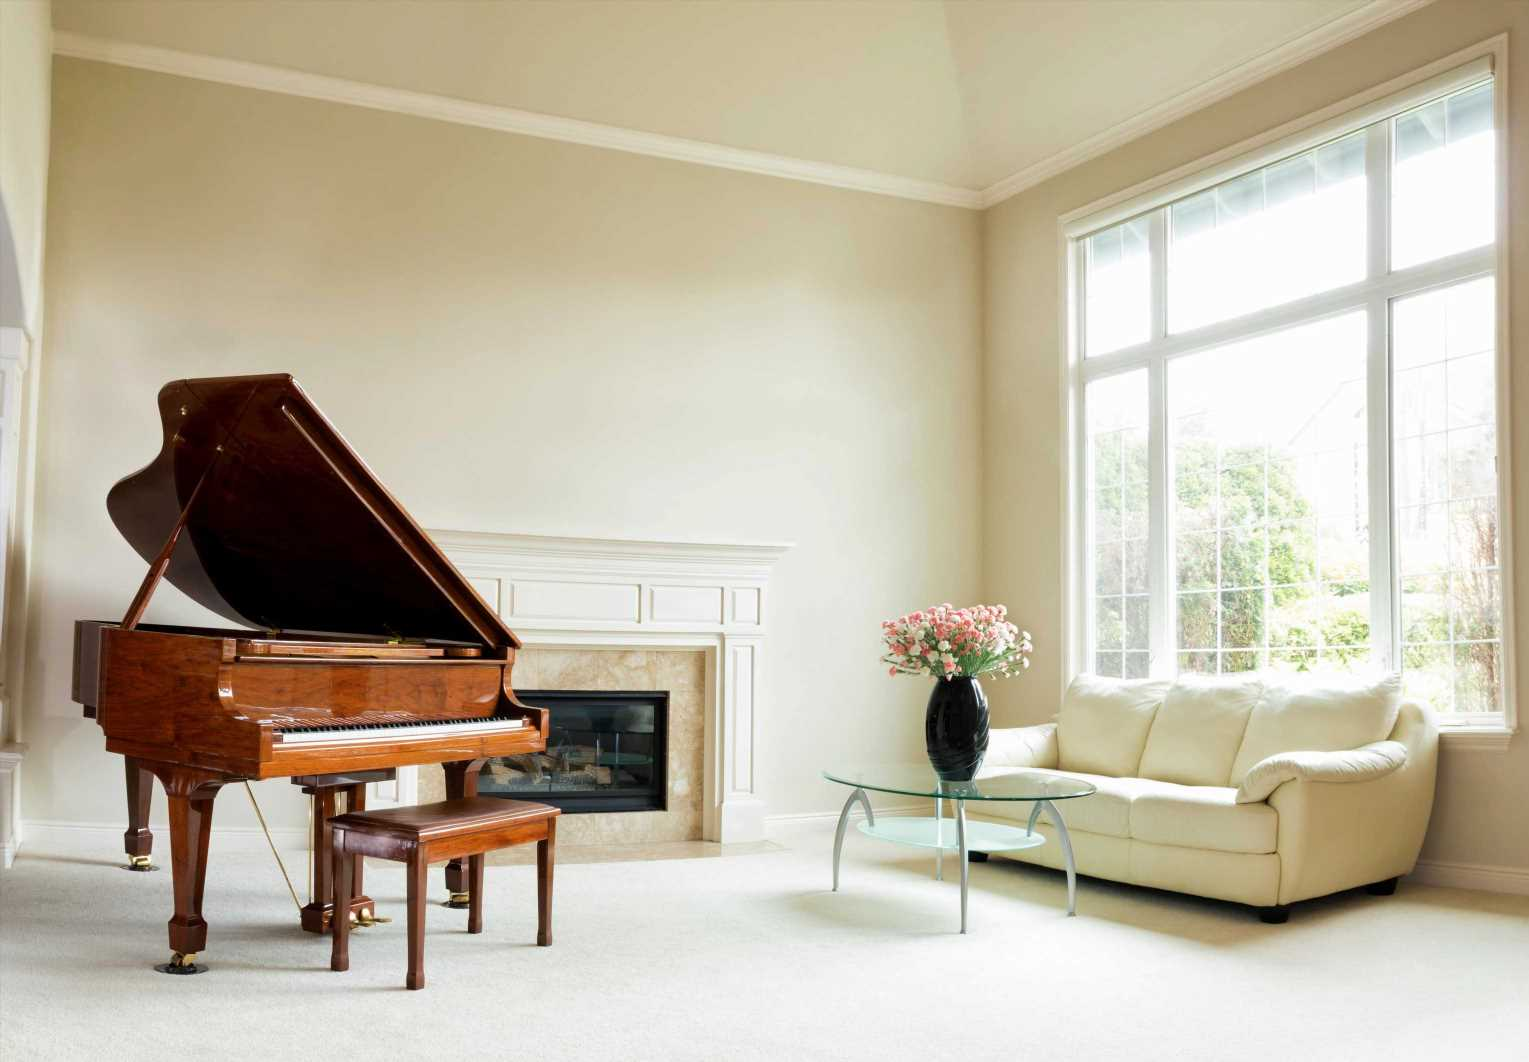 How Homeowners Insurance for Musical Instruments Could Help